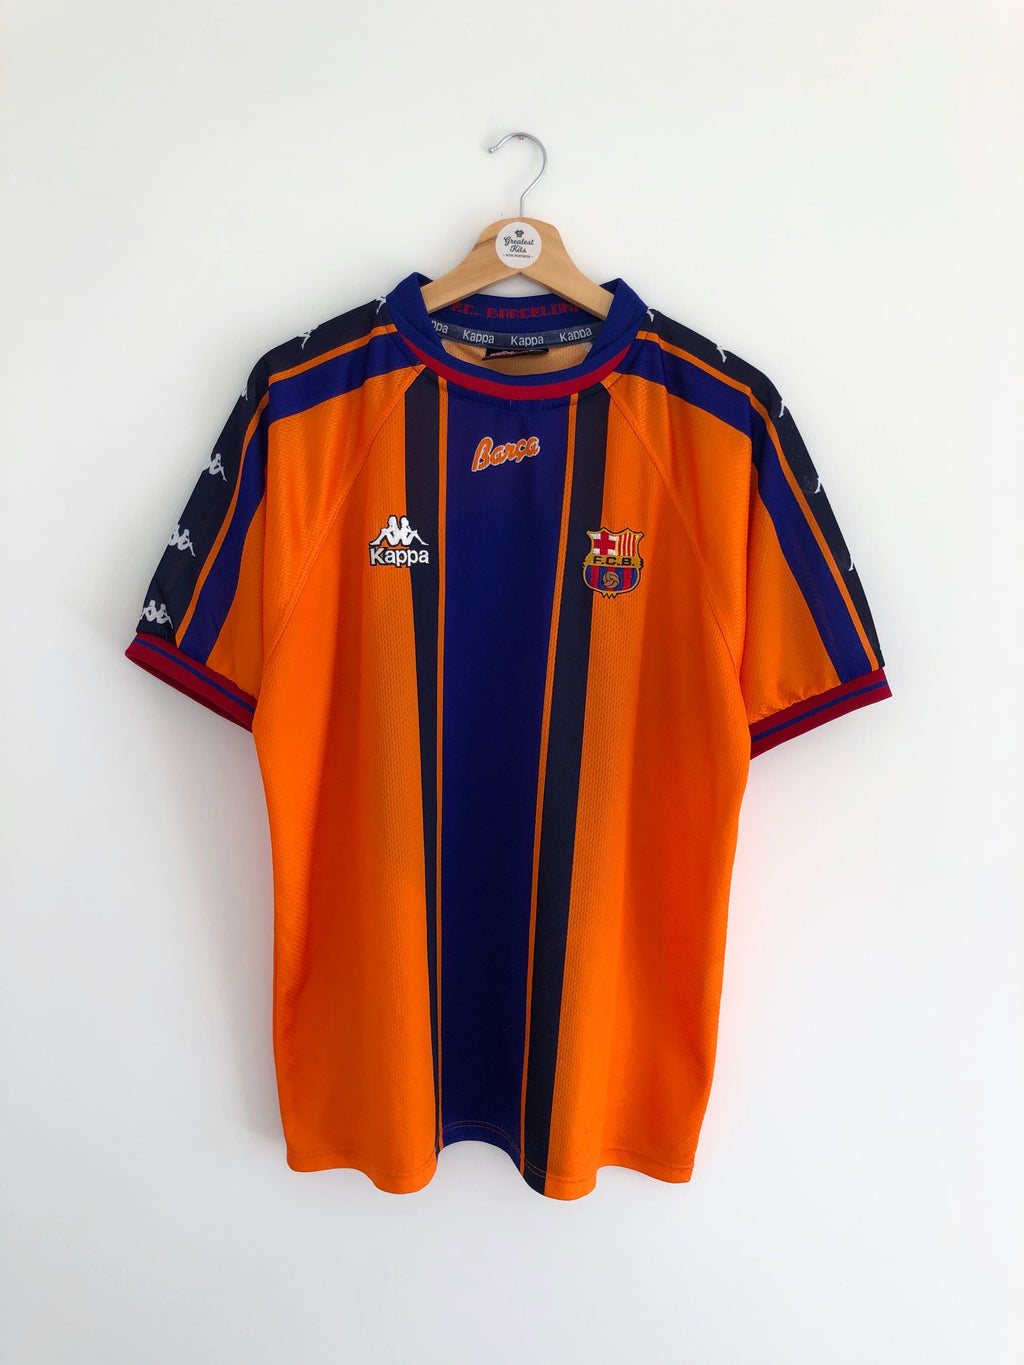 1997/98 Barcelona Away Shirt (L) 8.5/10